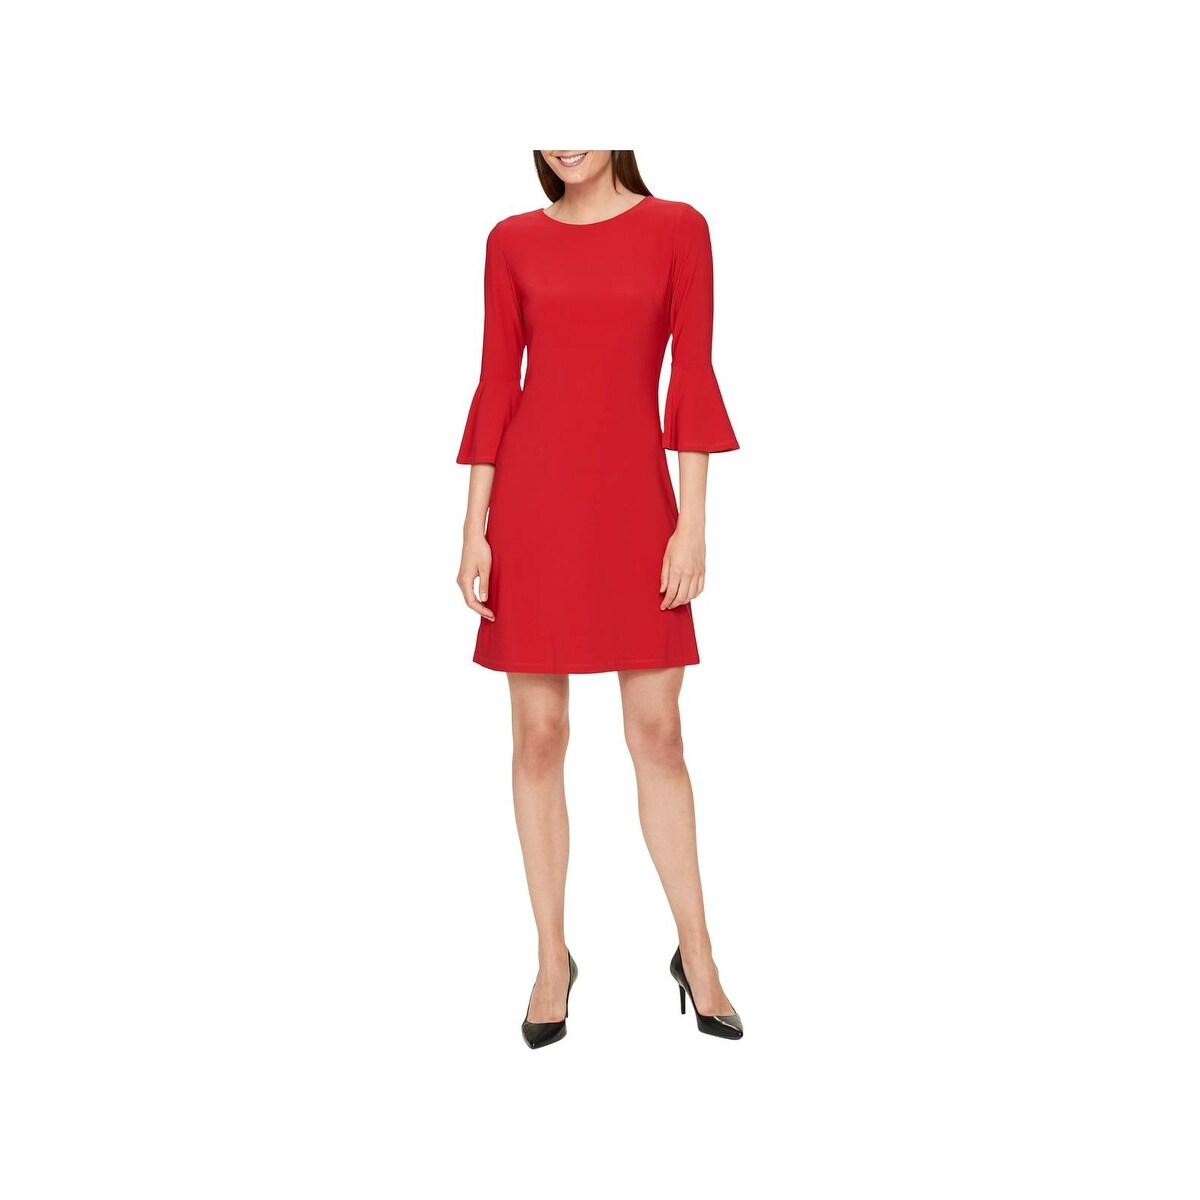 6a5c46b9b13 Tommy Hilfiger Dresses | Find Great Women's Clothing Deals Shopping at  Overstock